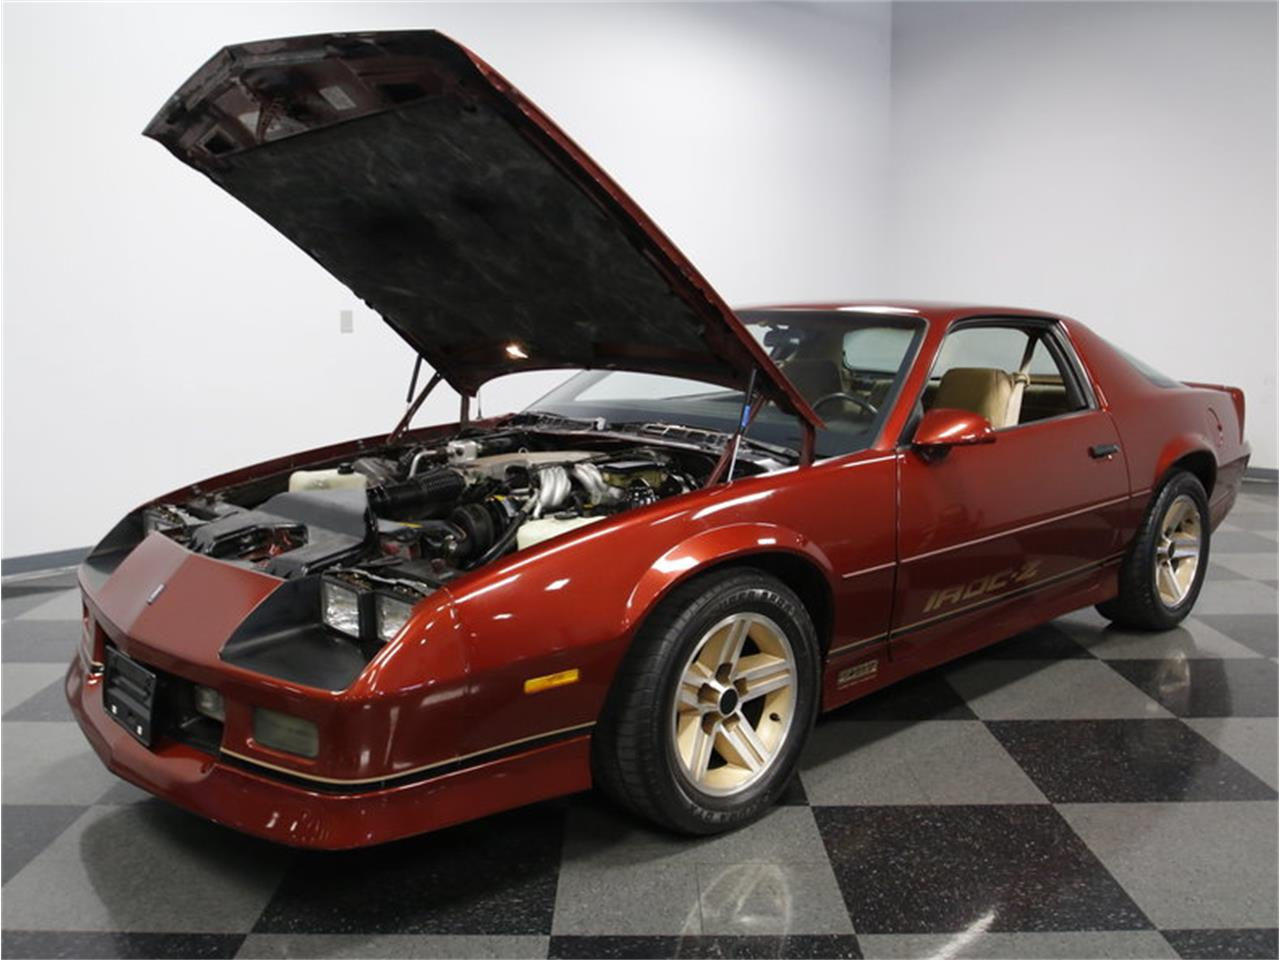 Large Picture of '86 Chevrolet Camaro IROC Z28 located in North Carolina - L6HZ